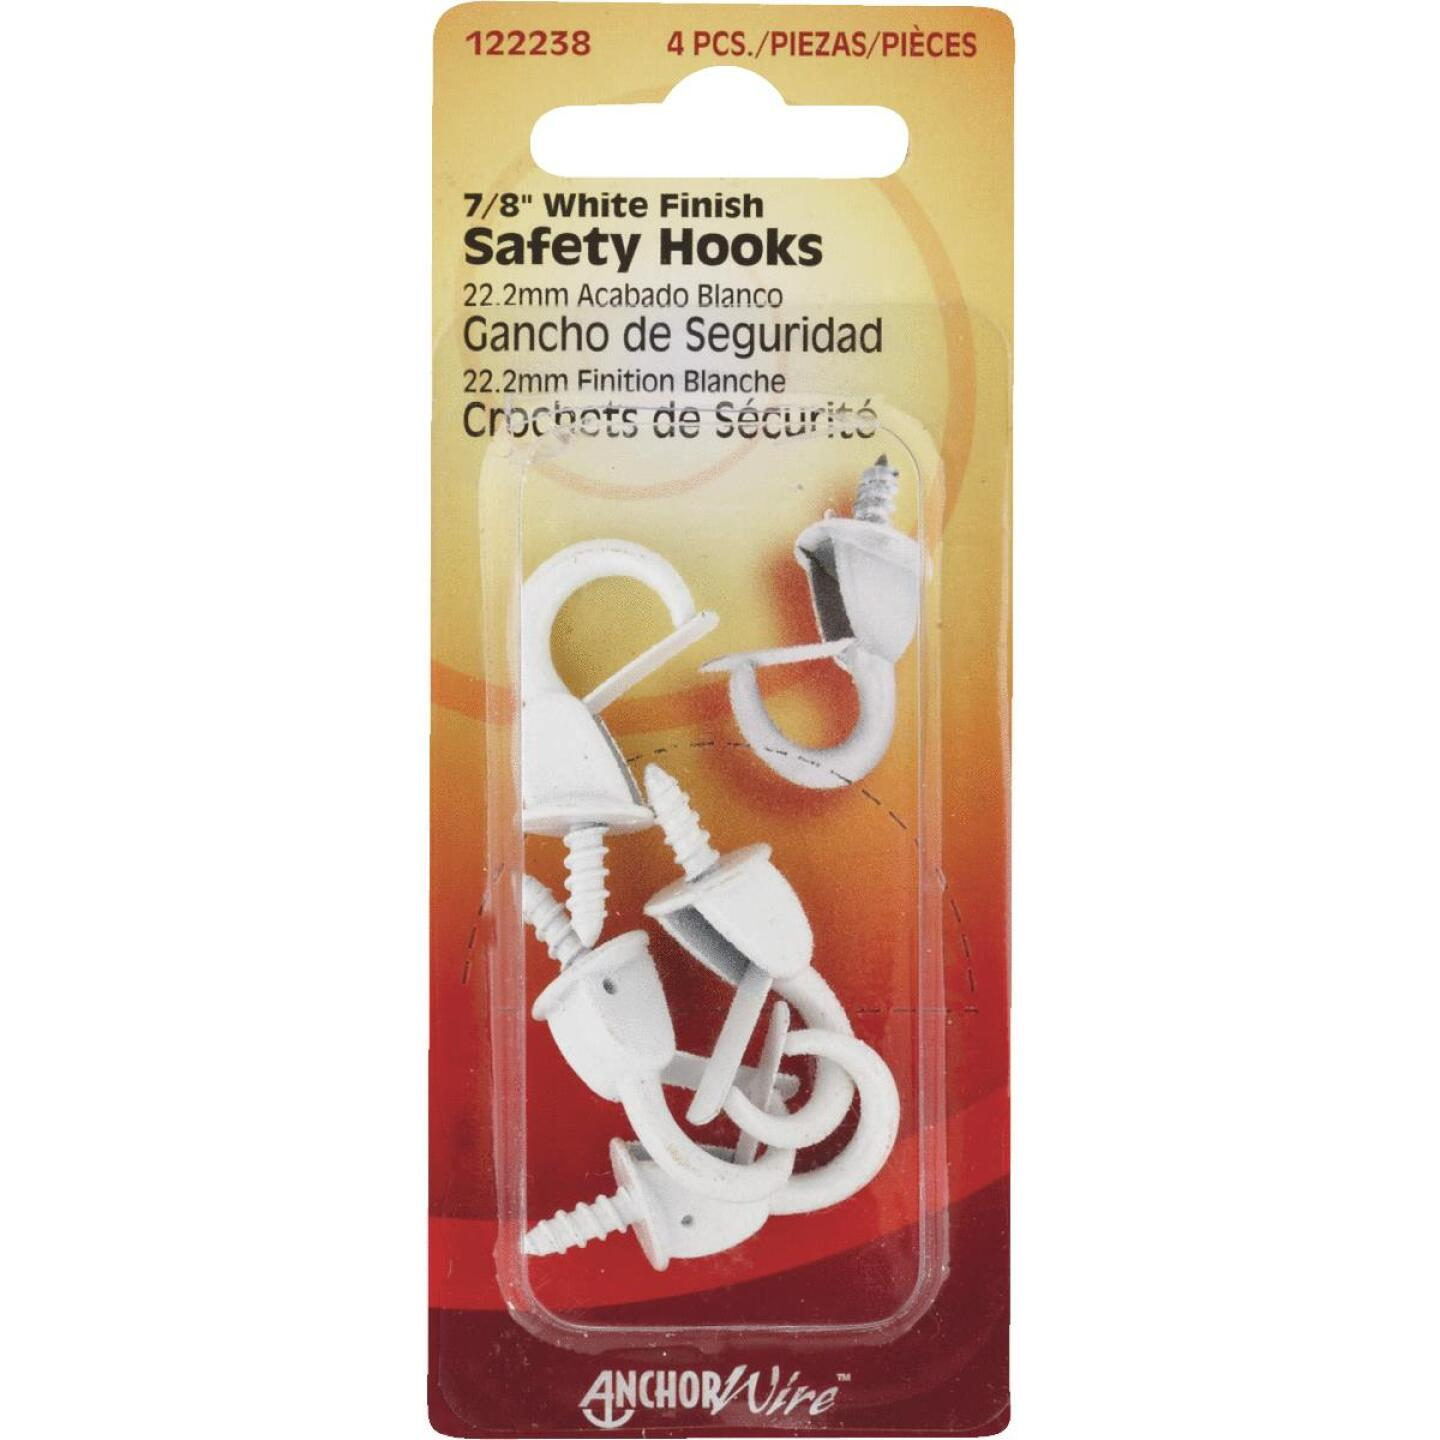 Hillman Anchor Wire 7/8 In. White Spring Safety Hook Image 1